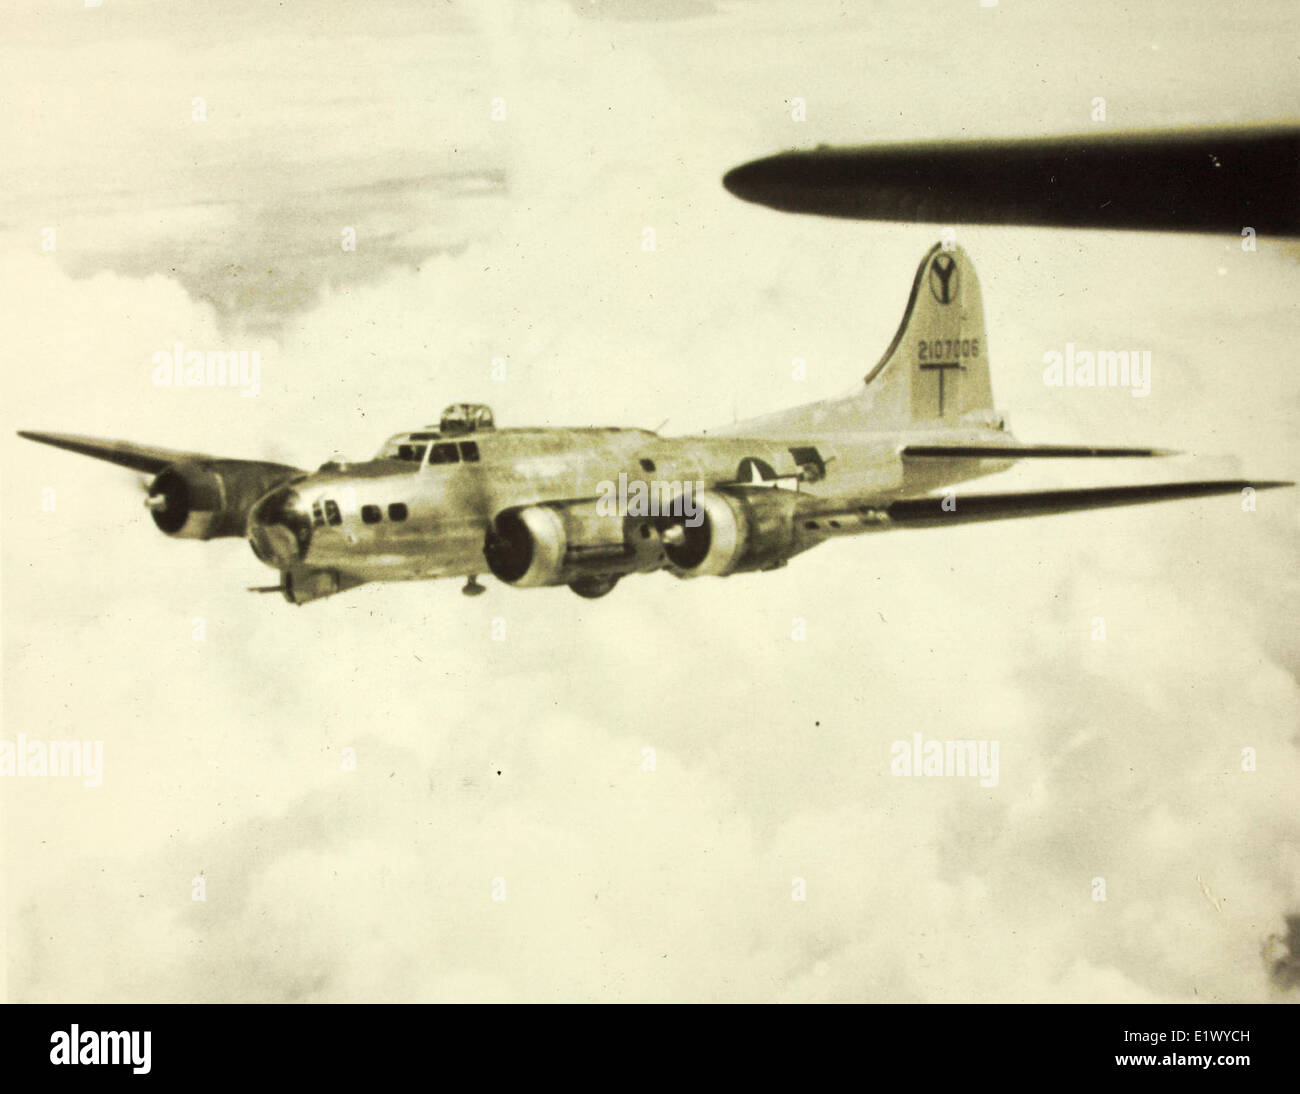 2nd Bomb Group; 15th Air Foce; 49th, 20th, 96th 429th Squadrons; B-17s Stock Photo